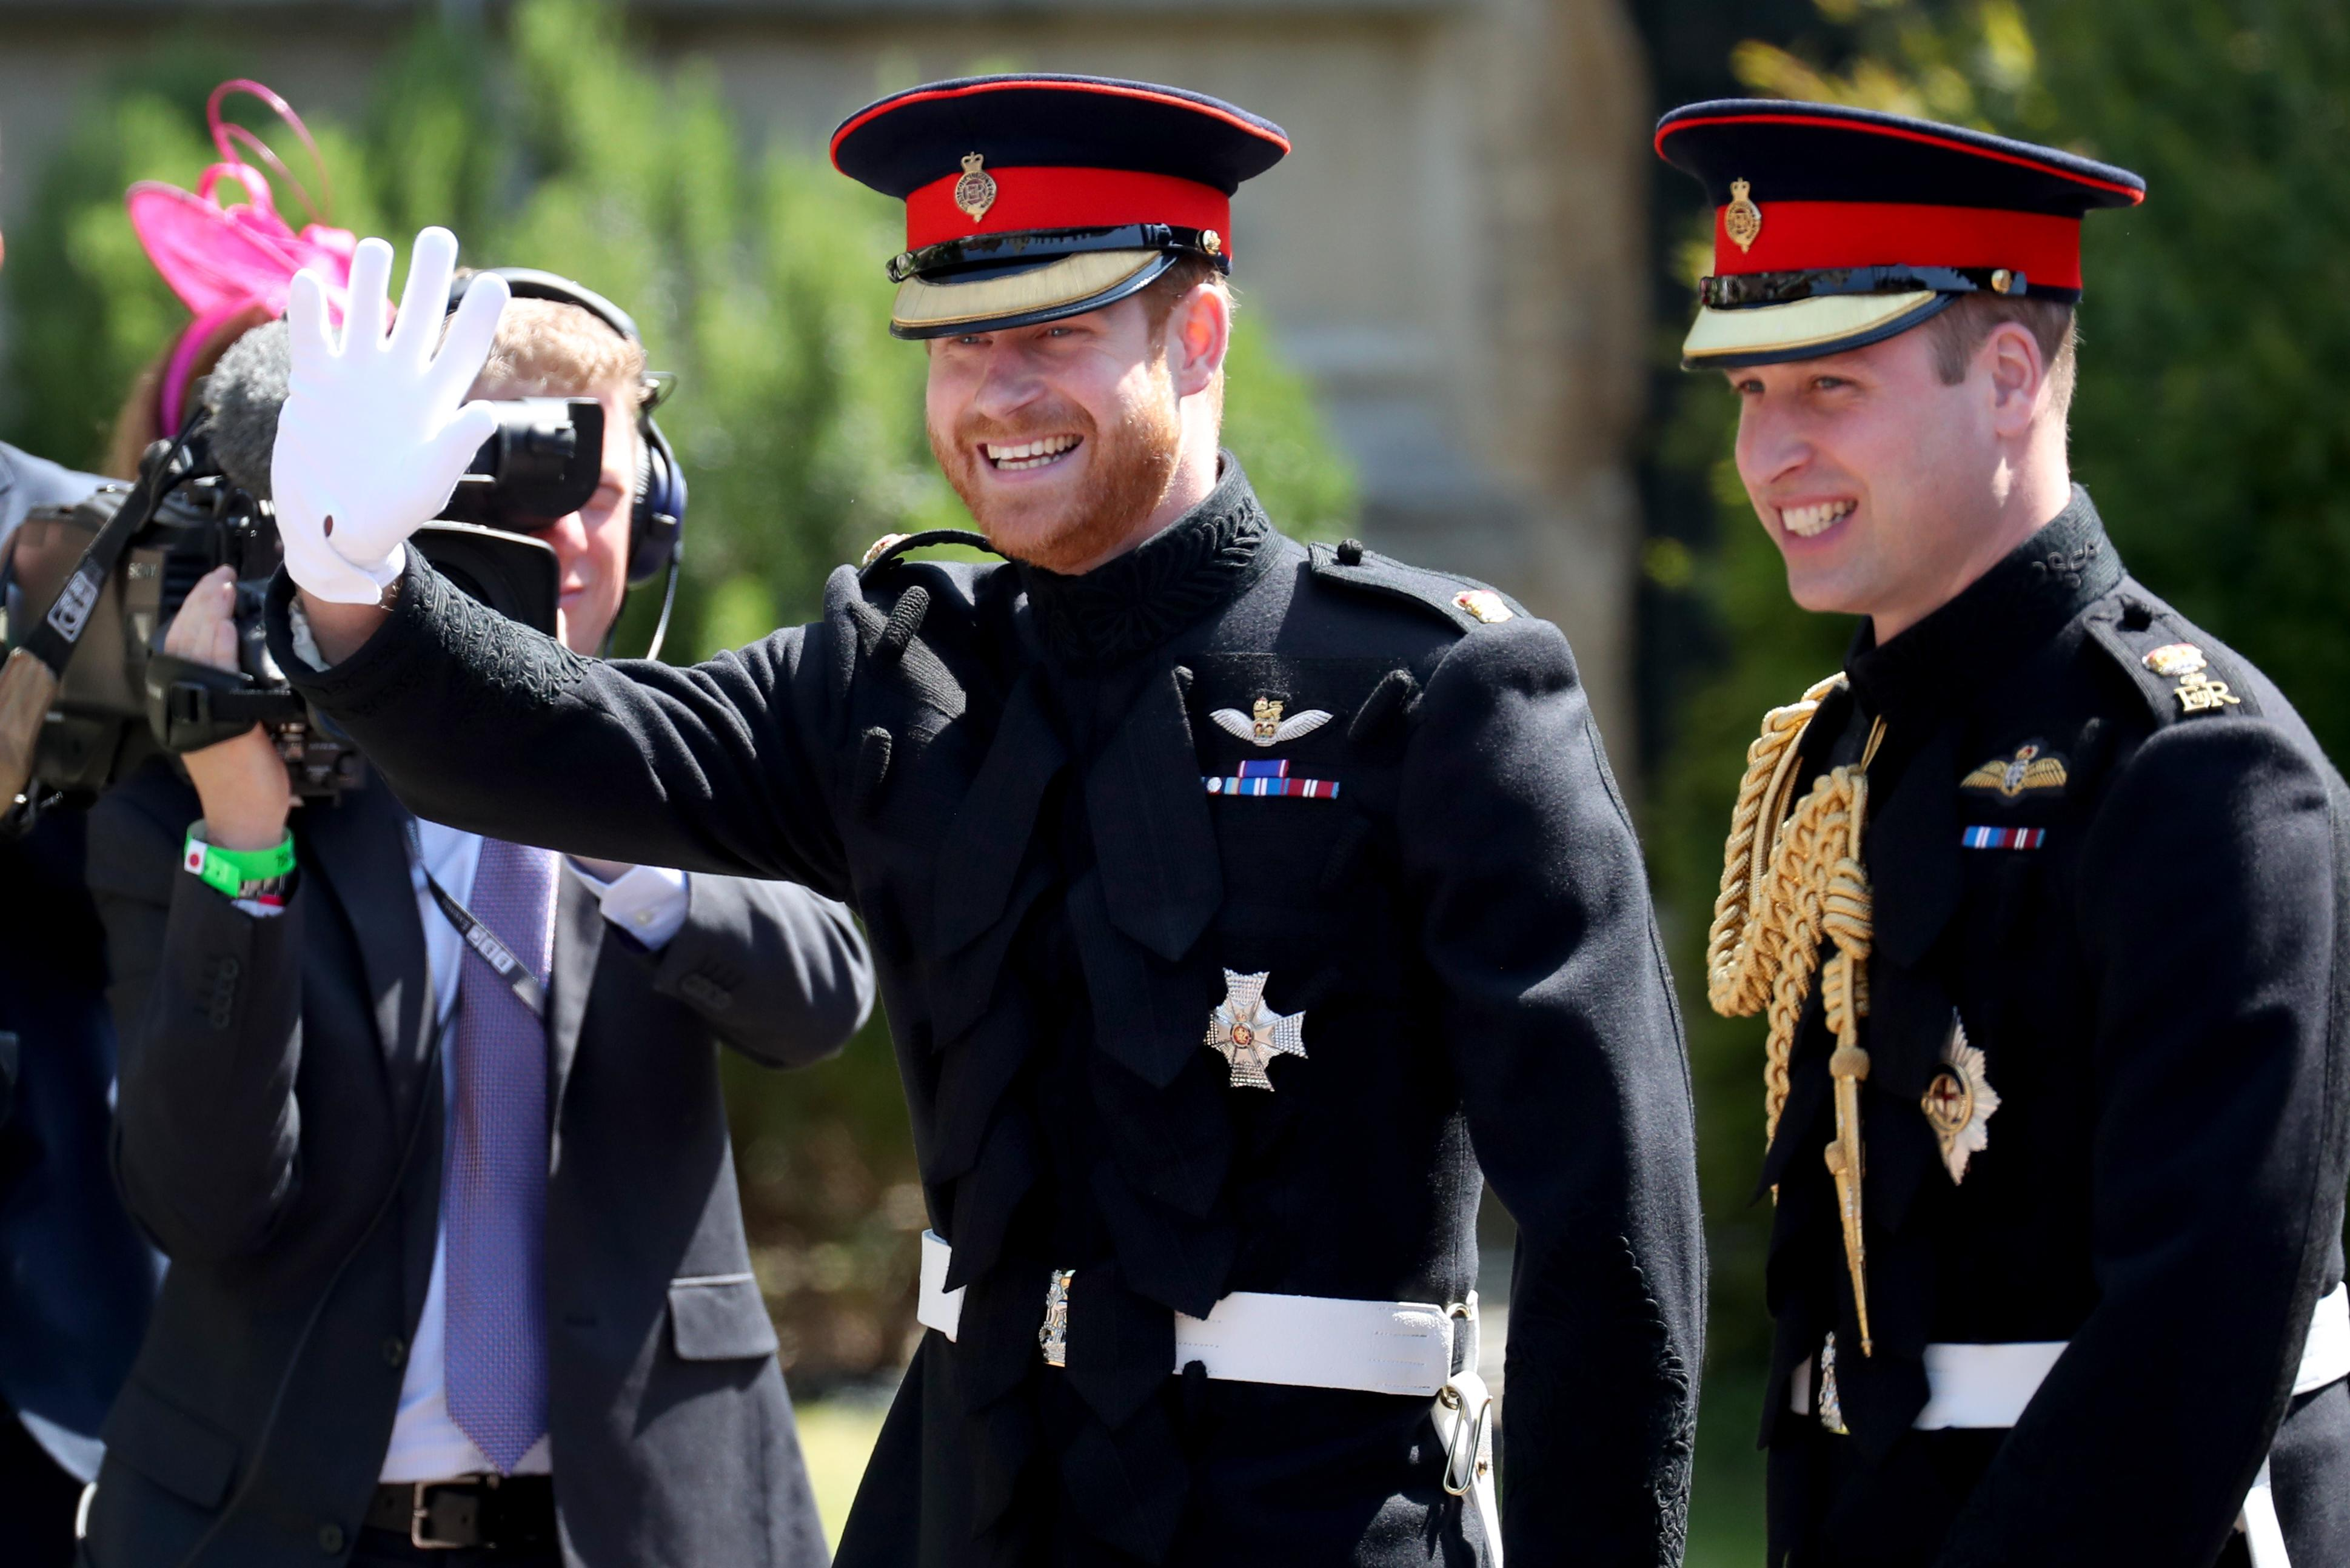 Prince William and Harry's rift is being healed, royal biographer claims